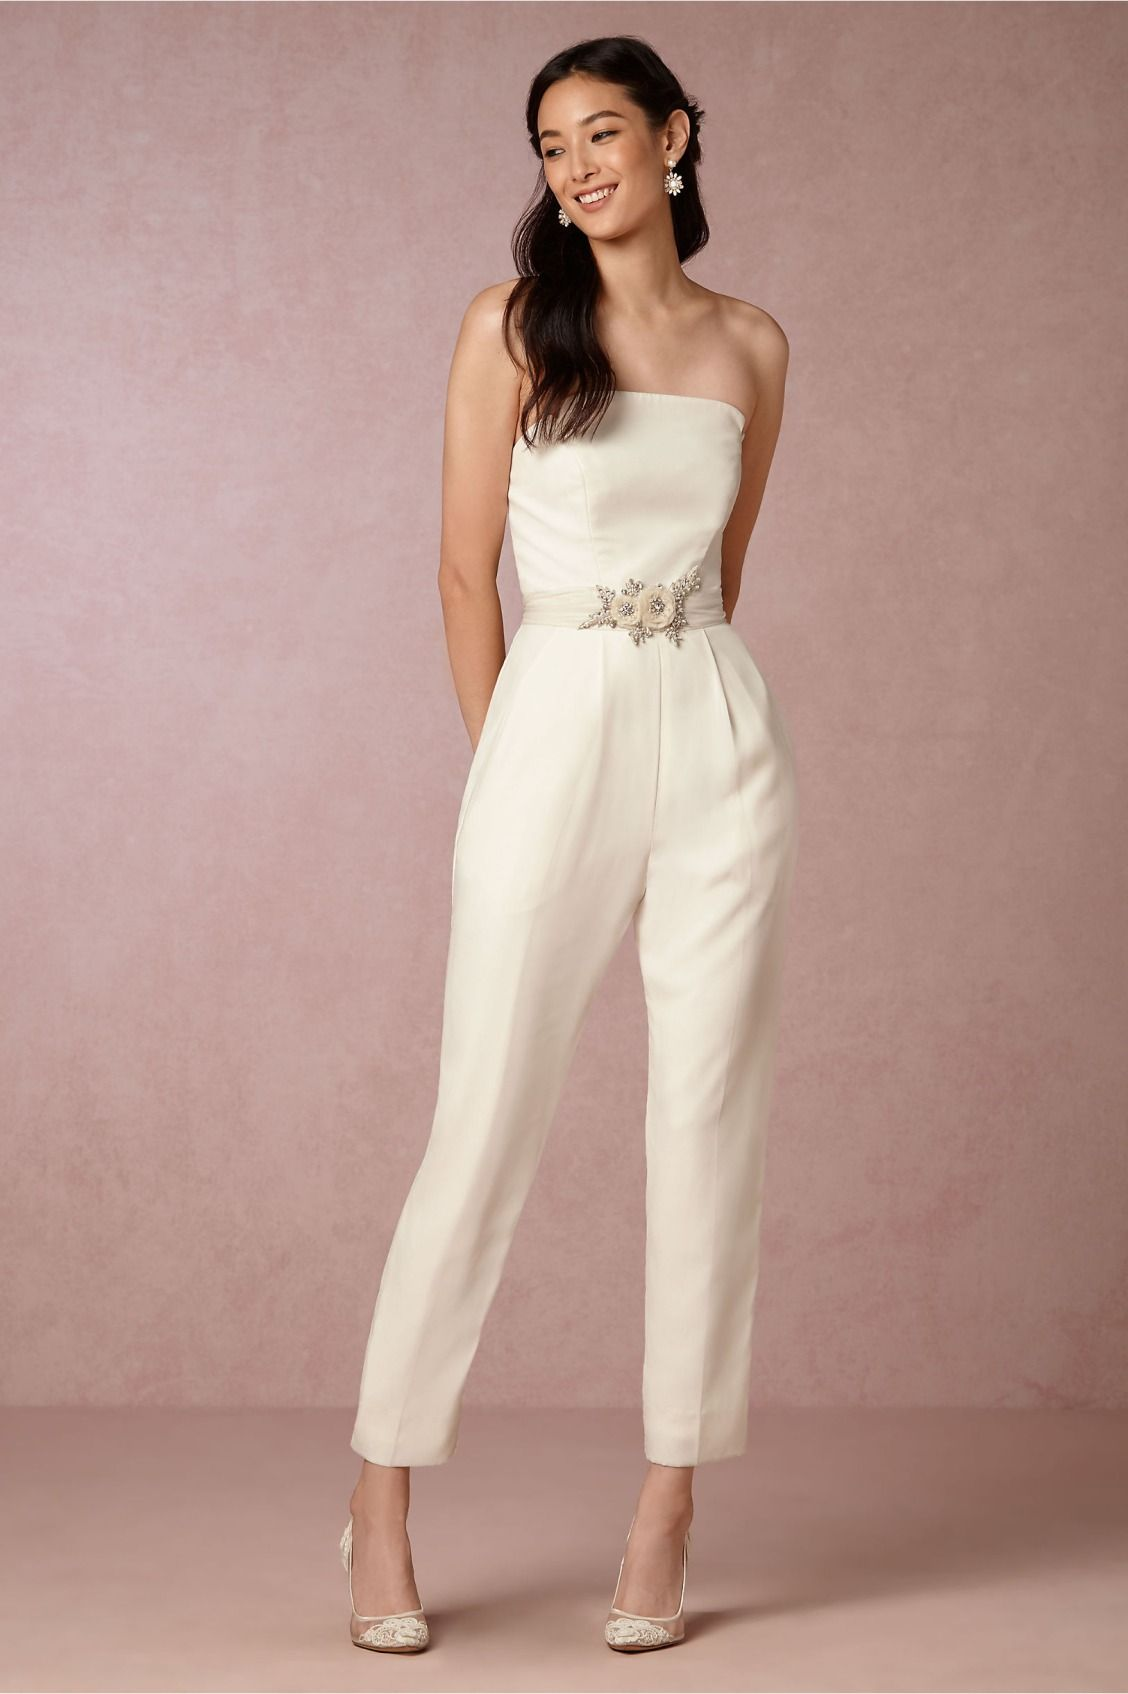 Hochzeit Jumpsuit Pop Of Modern Langley Jumpsuit From Bhldn